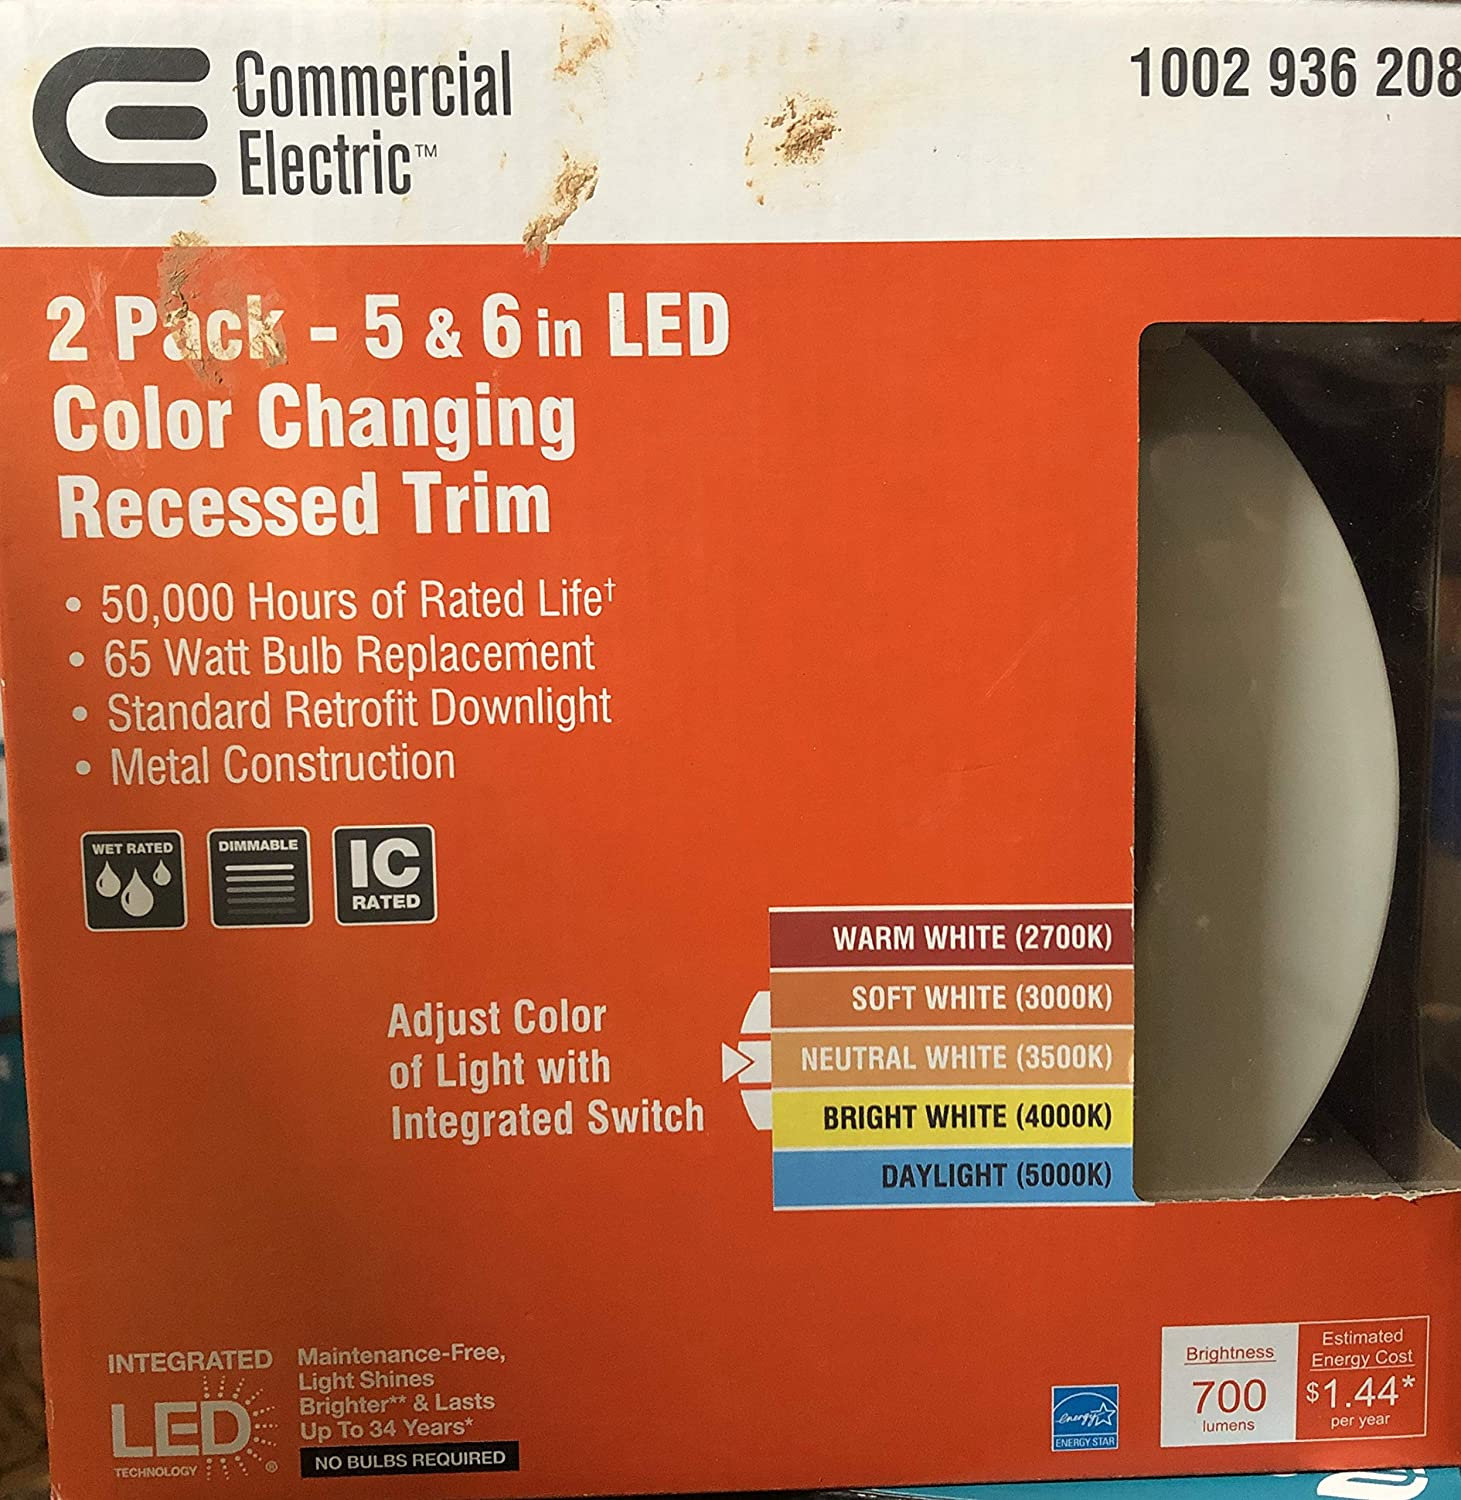 Amazon.com: Commercial Electric 2 Pack - 5 & 6 in LED Color Changing Recessed Trim: Home Improvement